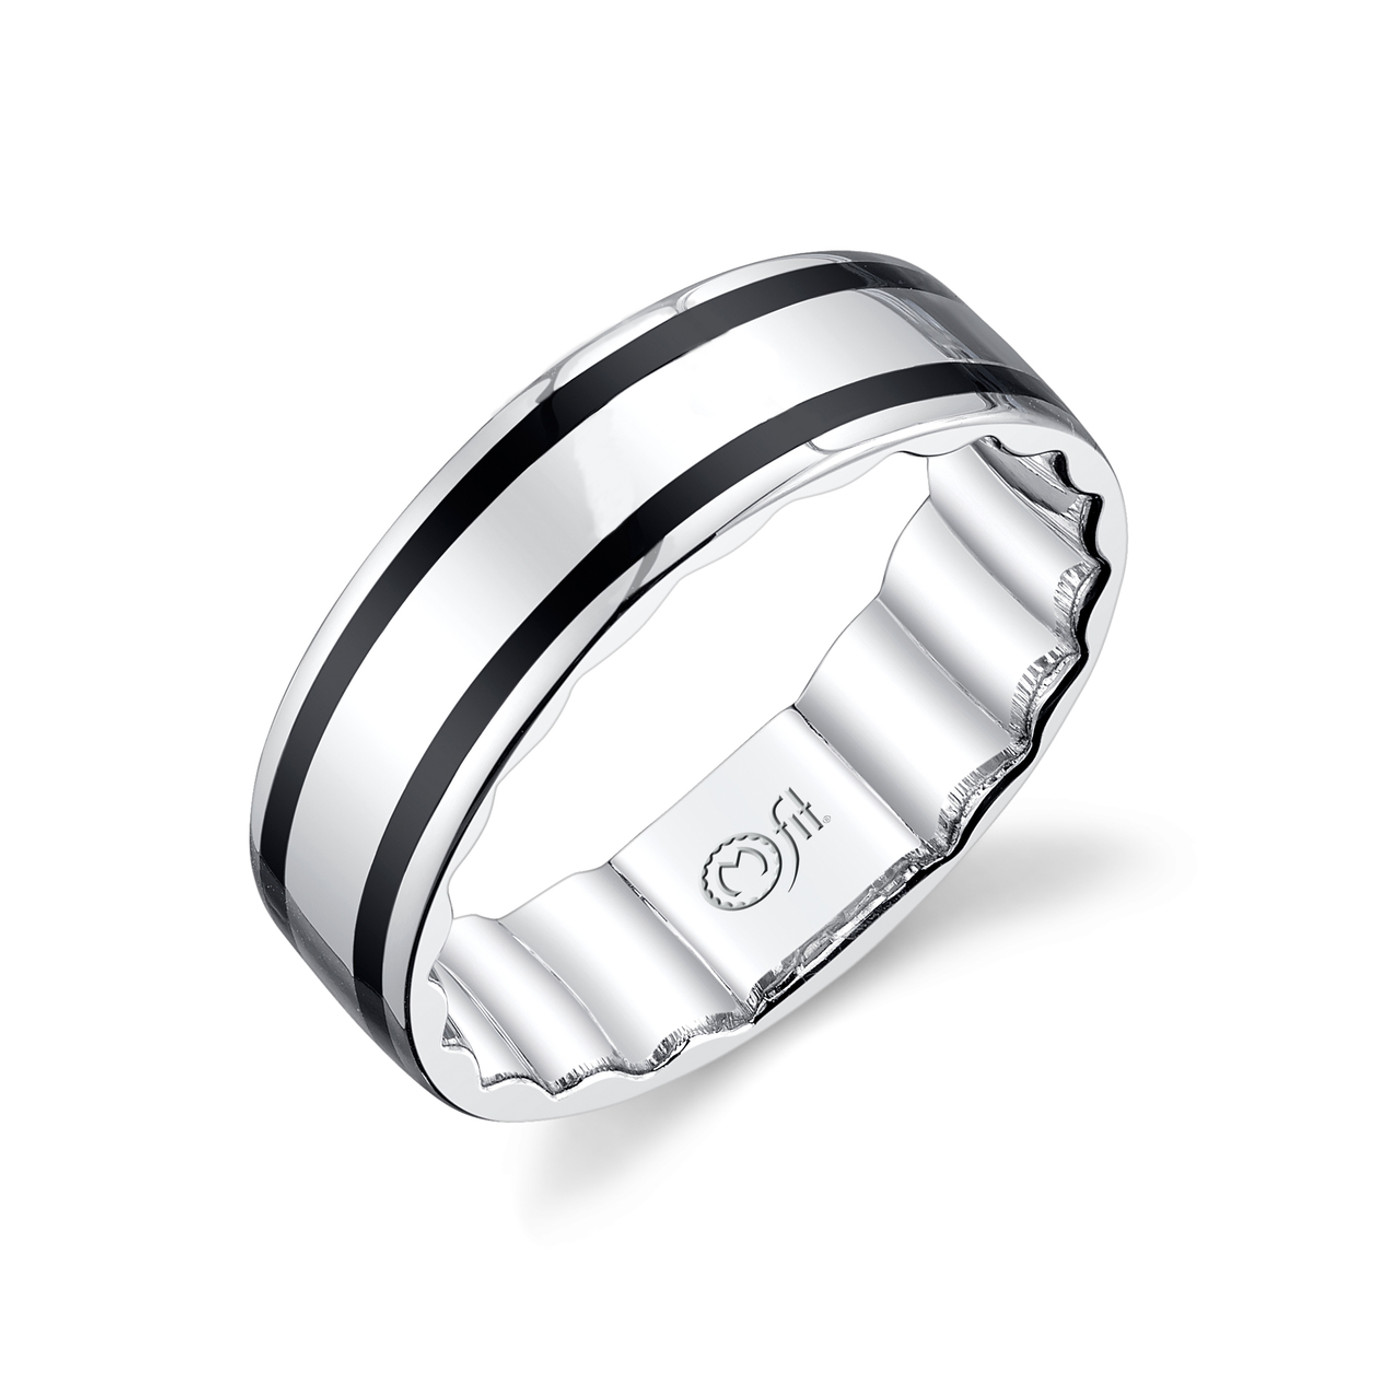 10K White Gold Mfit Men's Wedding Band w/Black Inlay